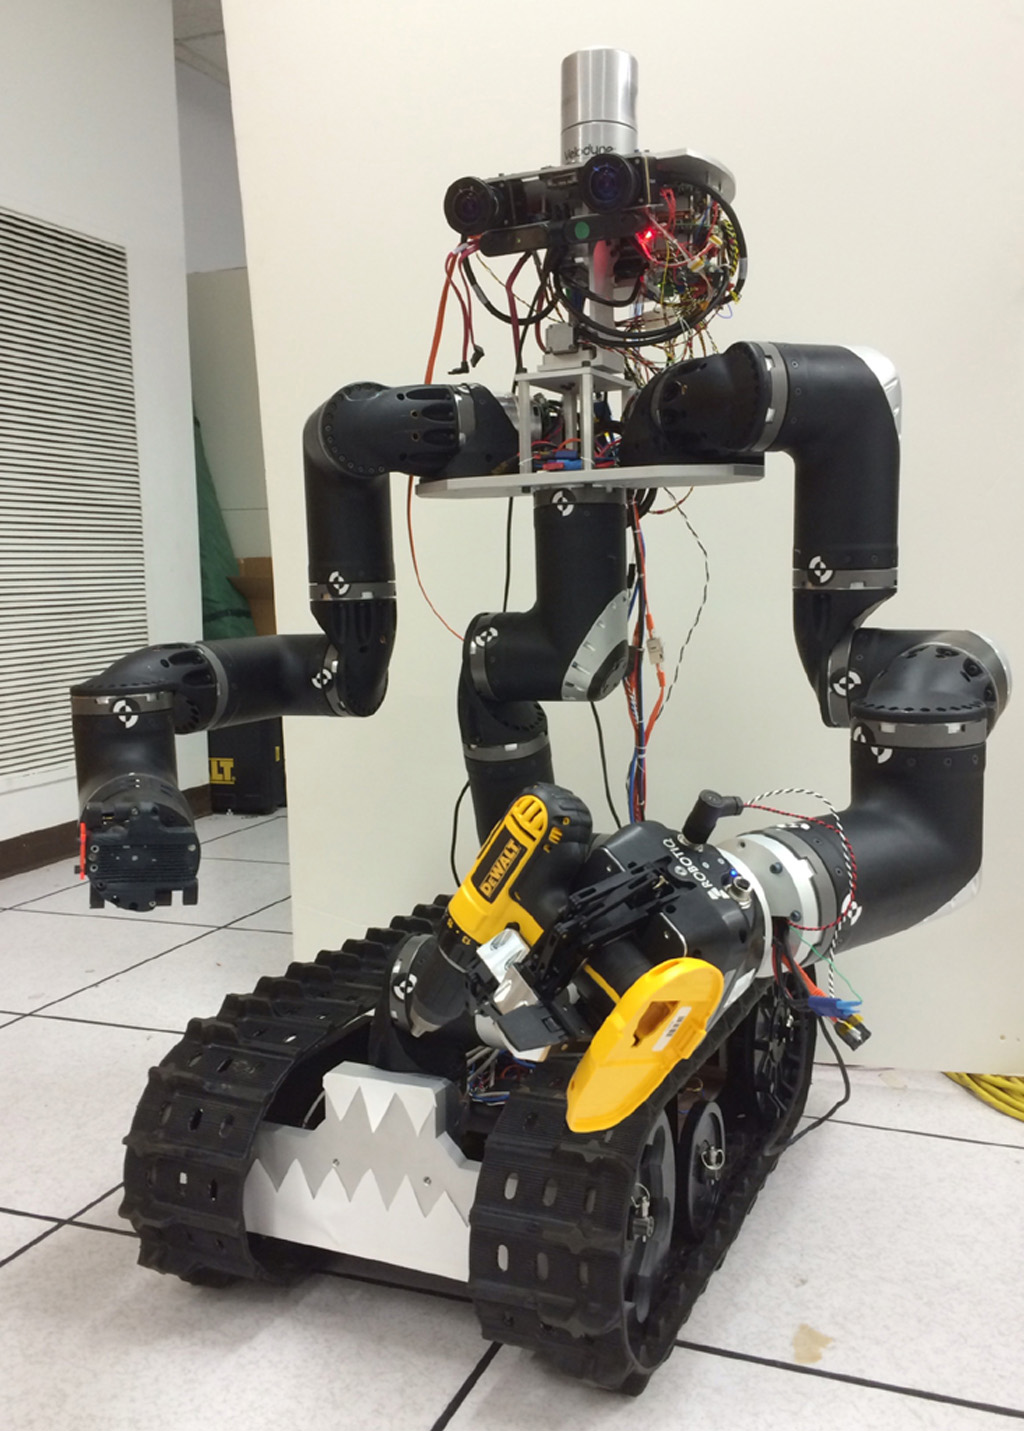 The Surrogate robot ('Surge'), built at NASA's Jet Propulsion Laboratory in Pasadena, CA., is being developed in order to extend humanity's reach into hazardous environments to perform tasks such as using environmental test equipment.